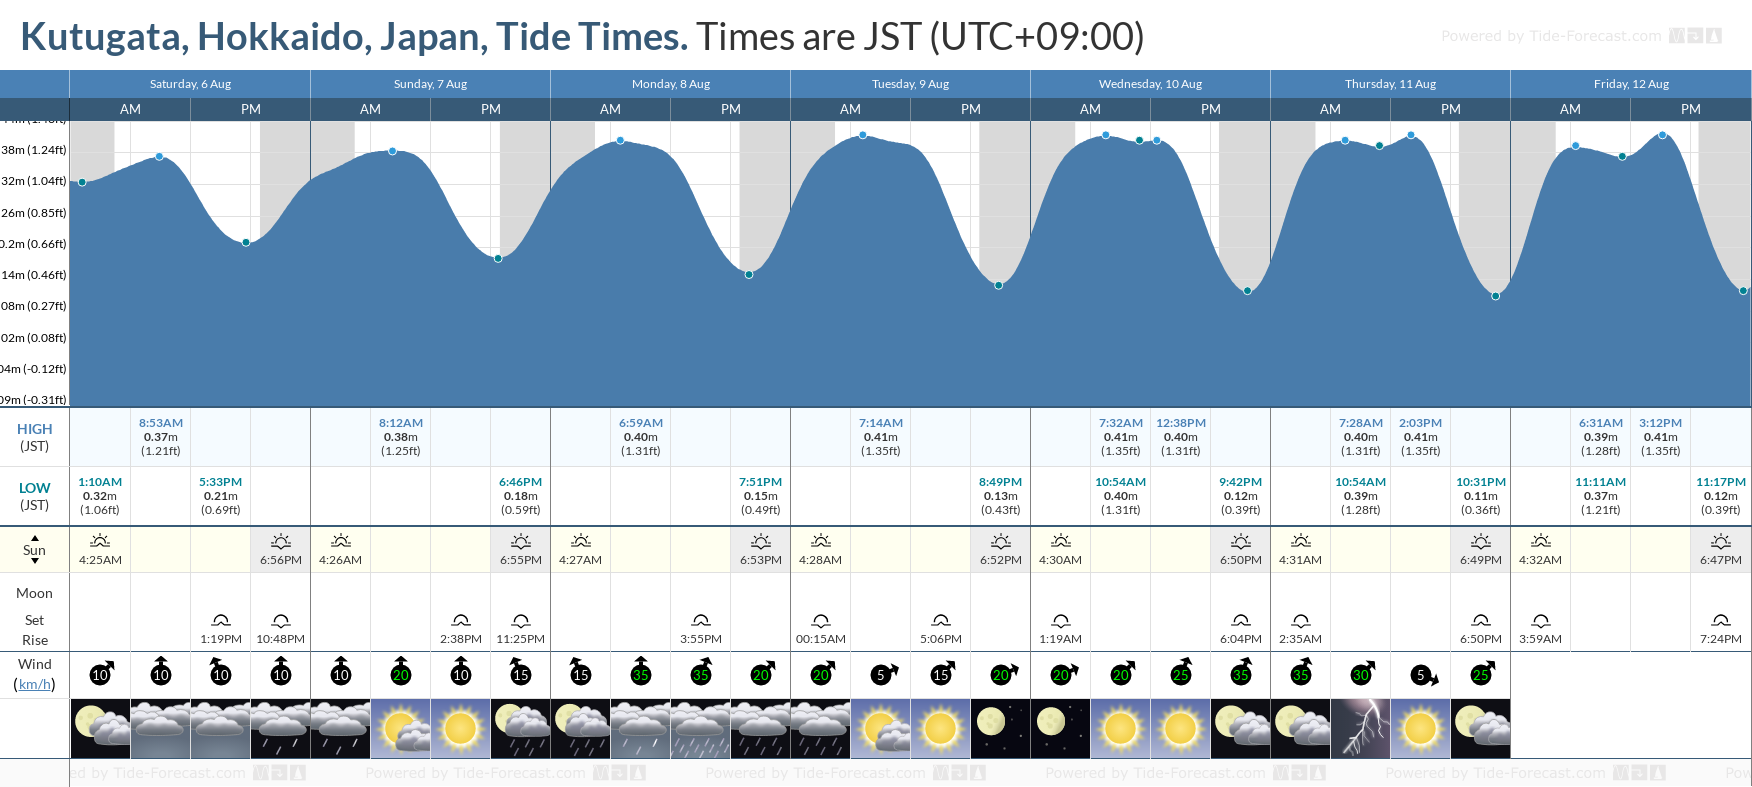 Kutugata, Hokkaido, Japan Tide Chart including high and low tide tide times for the next 7 days